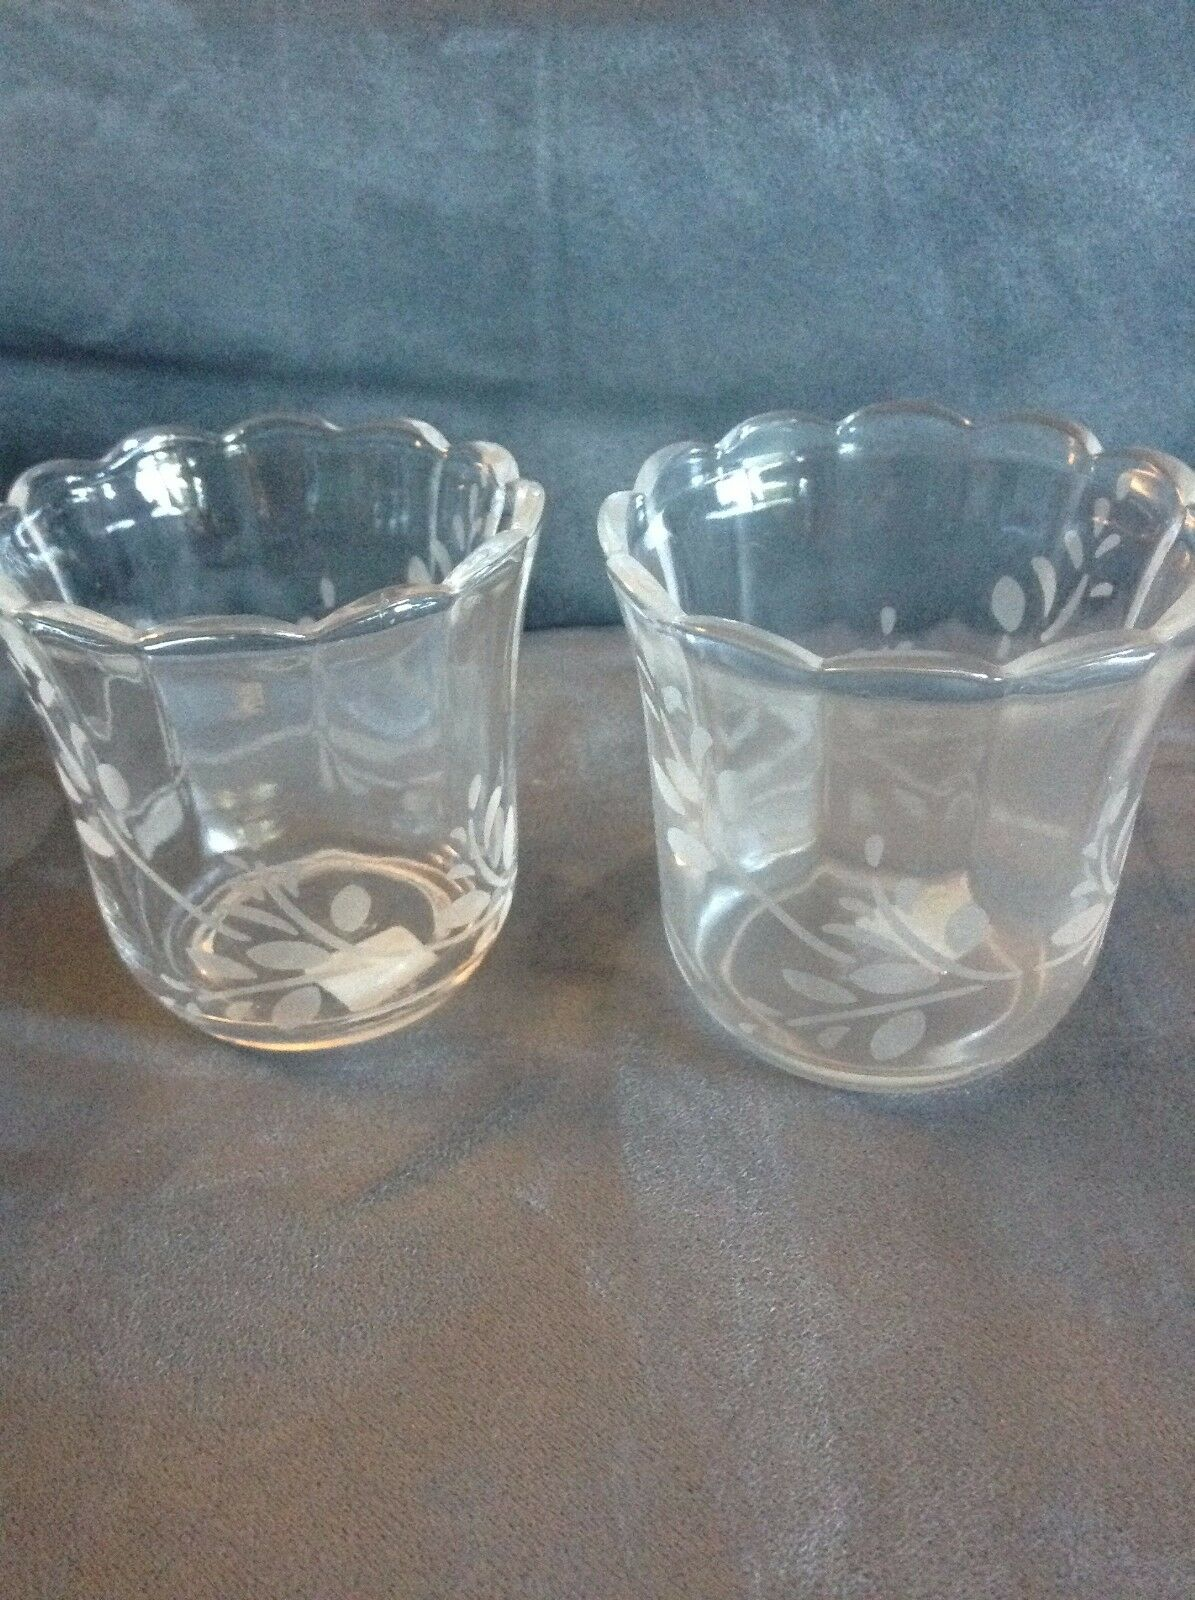 PARTYLITE HERBAL SPRING ETCHED VOTIVE HOLDER PAIR - NEW IN BOX VERY RARE